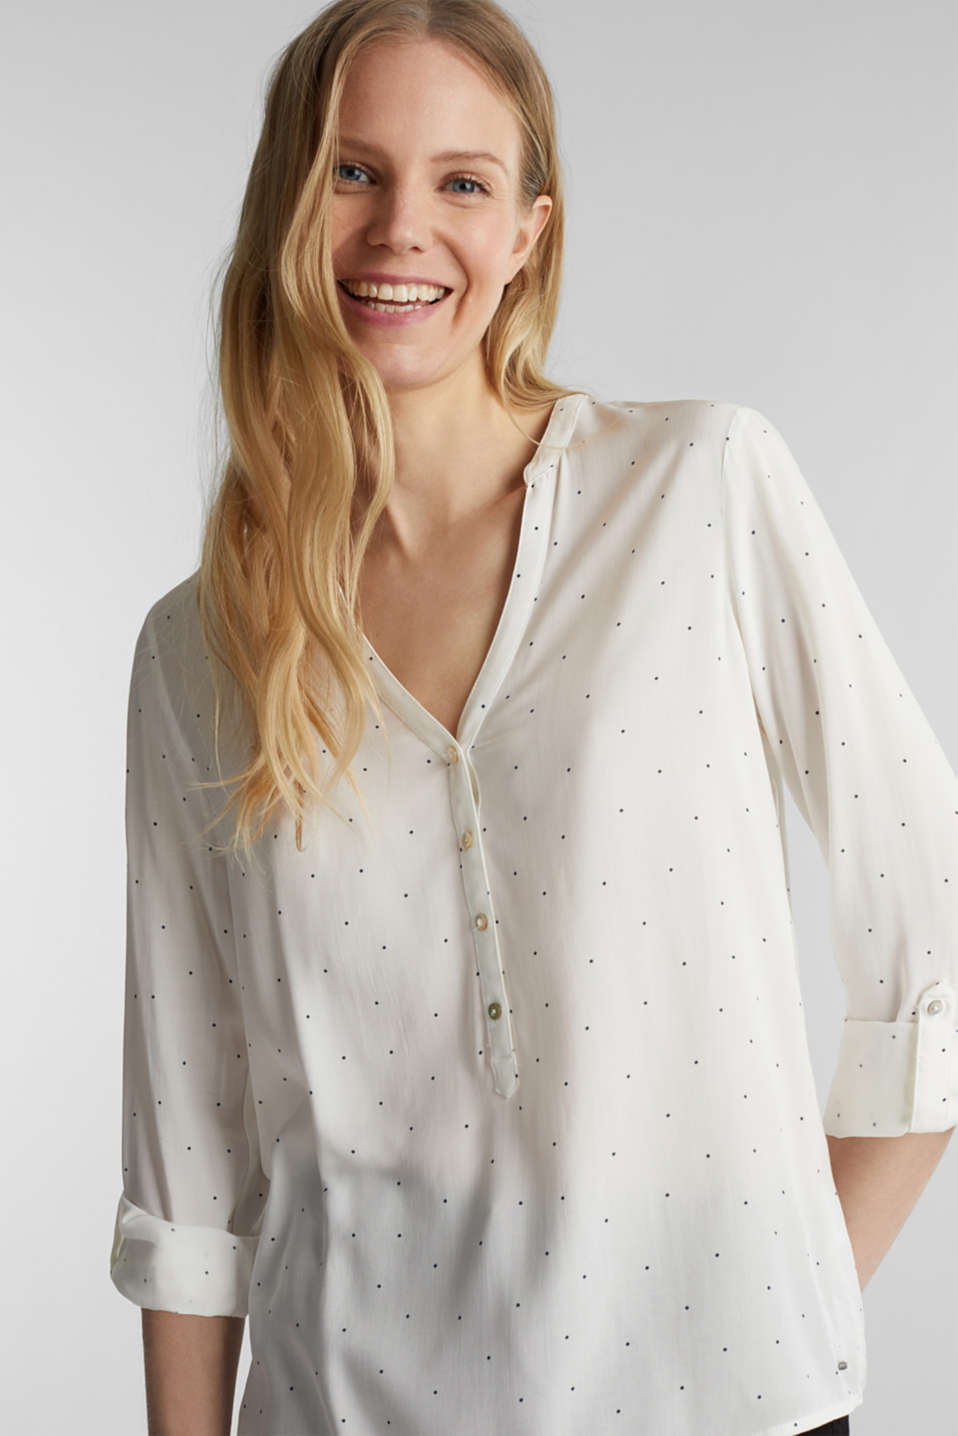 Esprit - Henley blouse with polka dots and turn-up sleeves